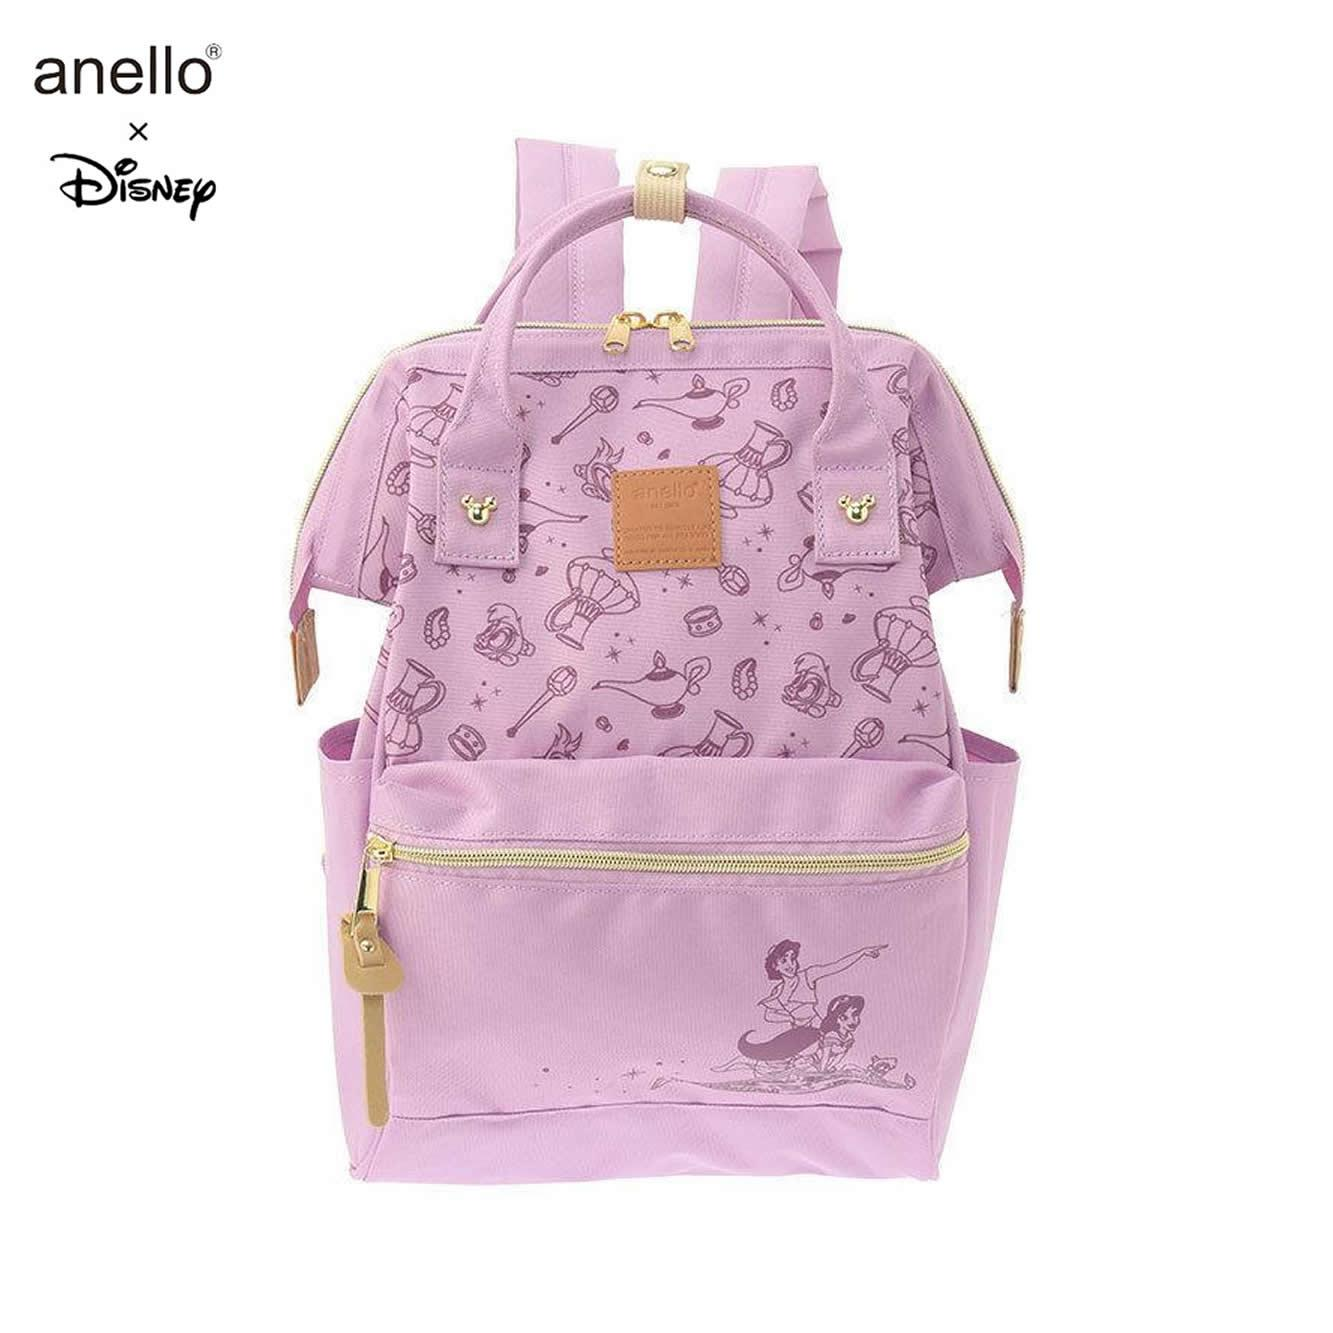 anello x disney collection  Exclusive Japan anello Backpack Disney Store  Backpacks 2019 designs cdc317861146a